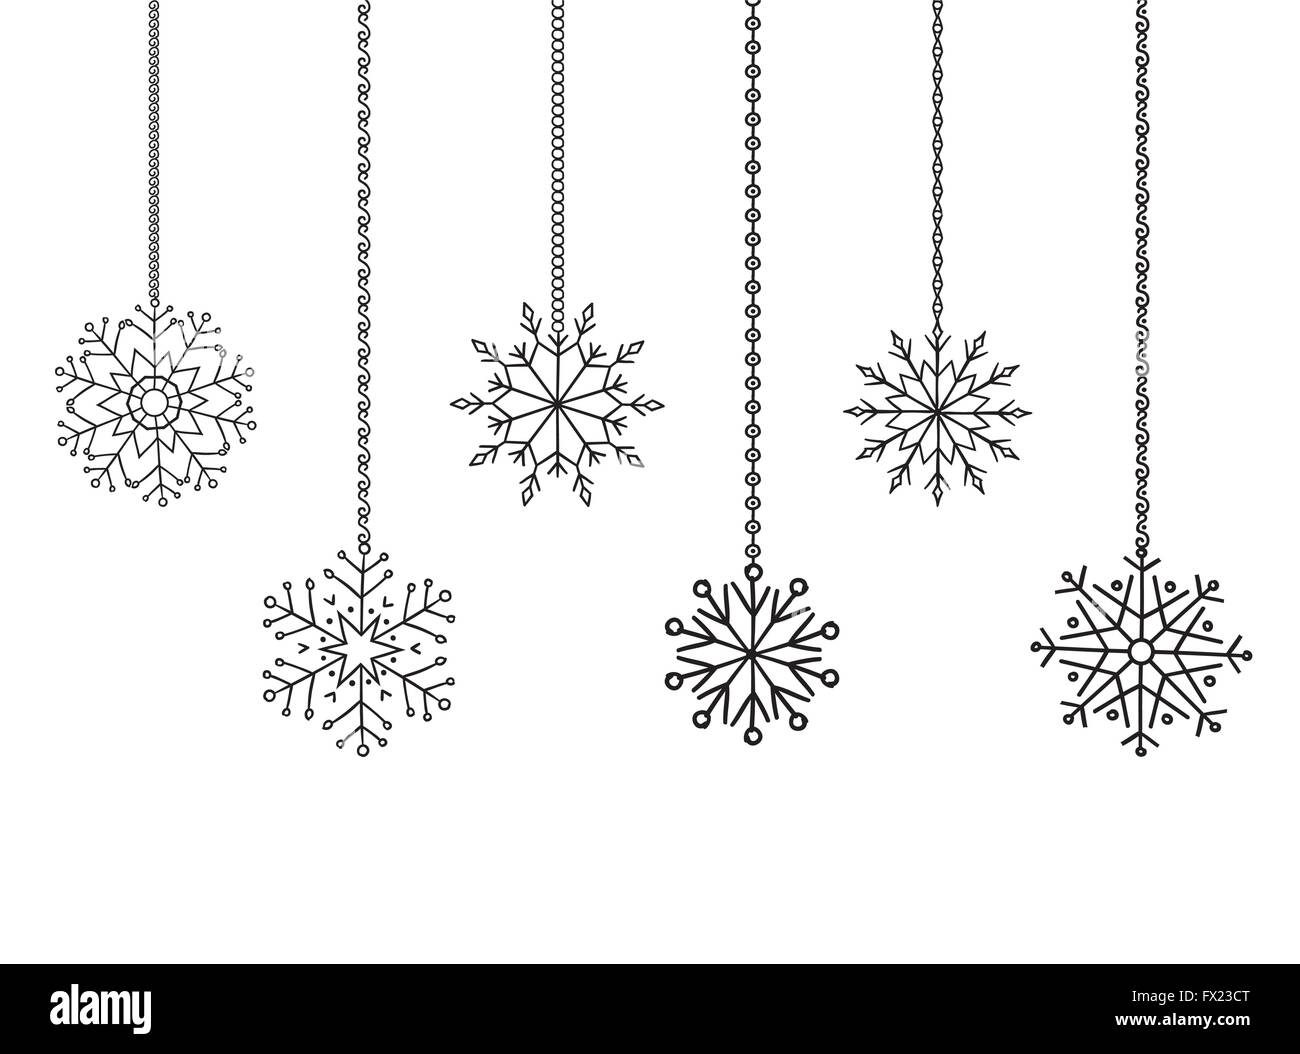 snowflakes garland border christmas and new year decoration for your design stock image